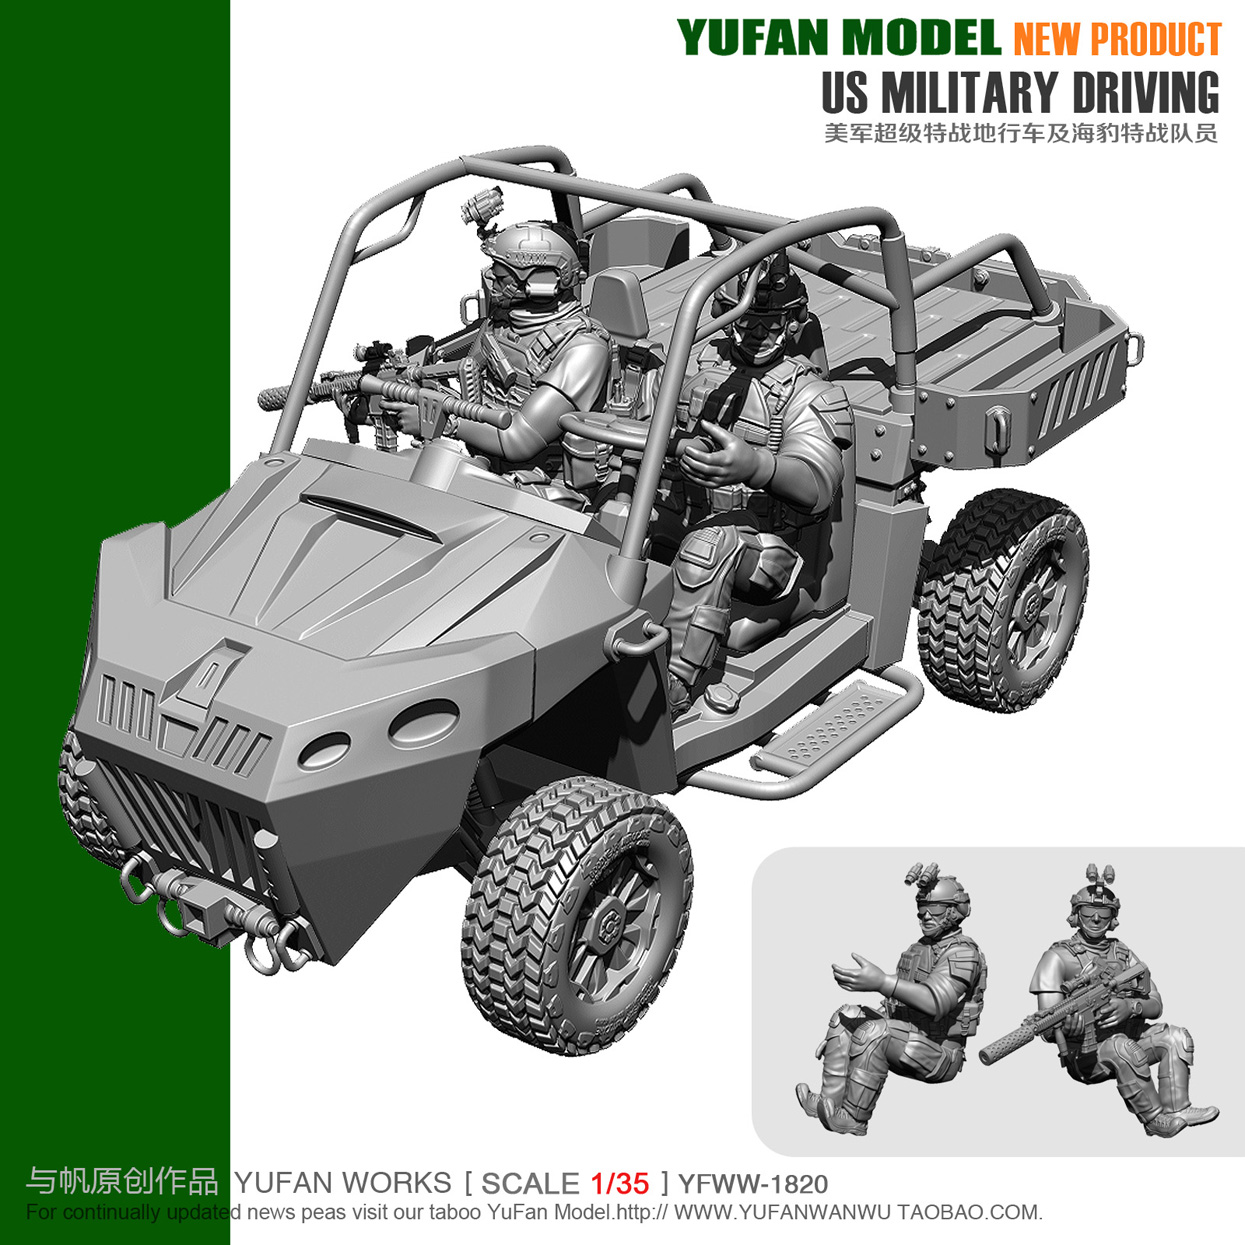 YUFAN Model Original 1/35 American Terrain Vehicle And Driver YFWW35-1820 KNL Hobby